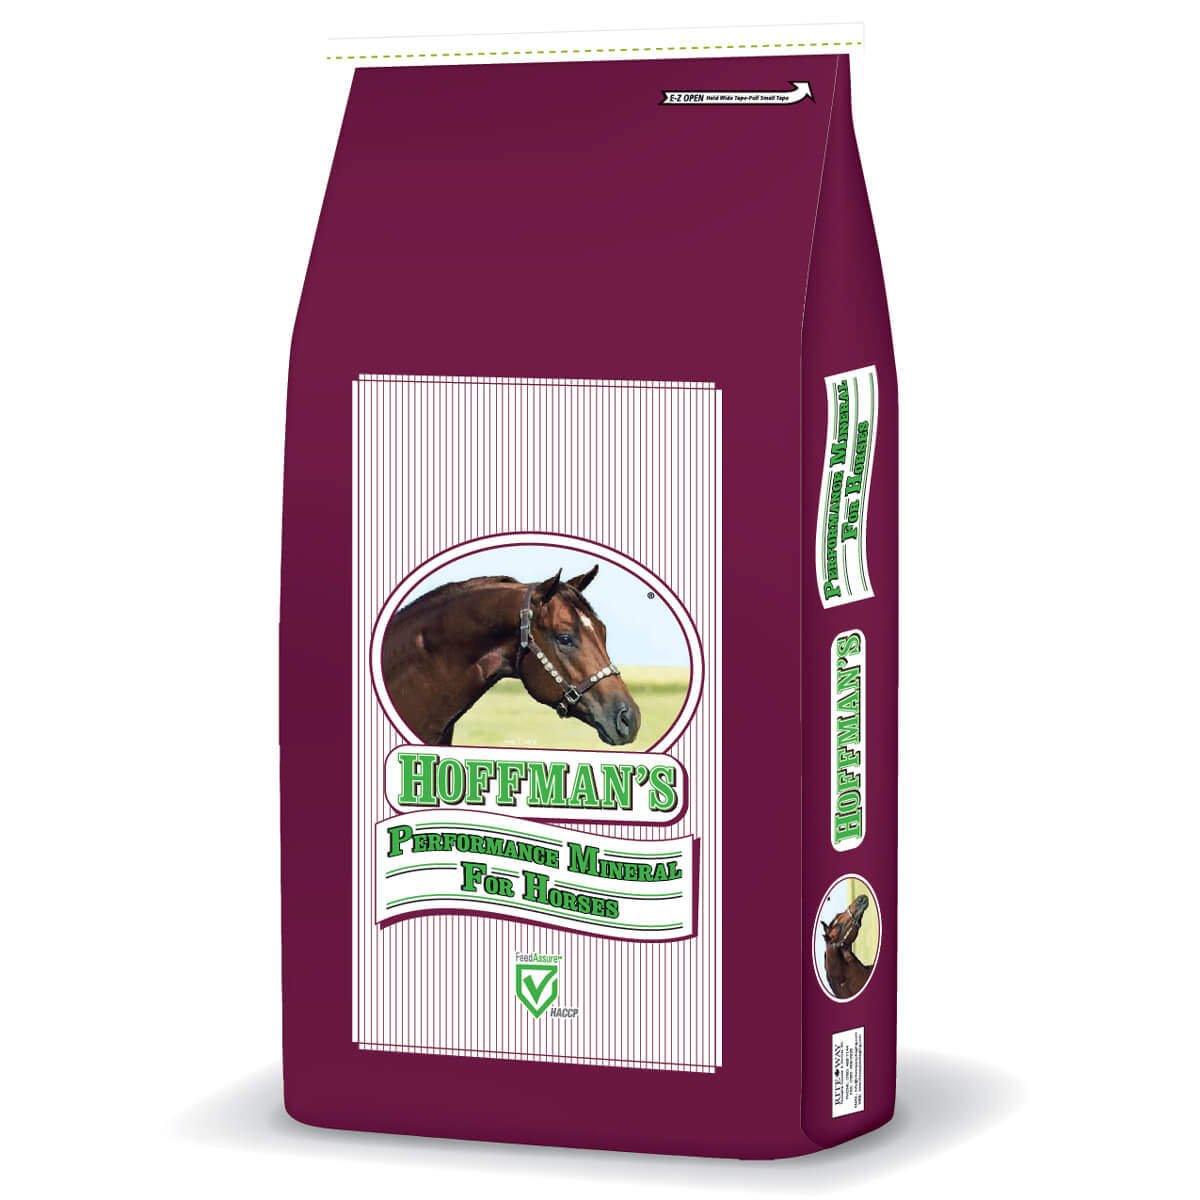 Hoffman's Performance Mineral  - 8 kg